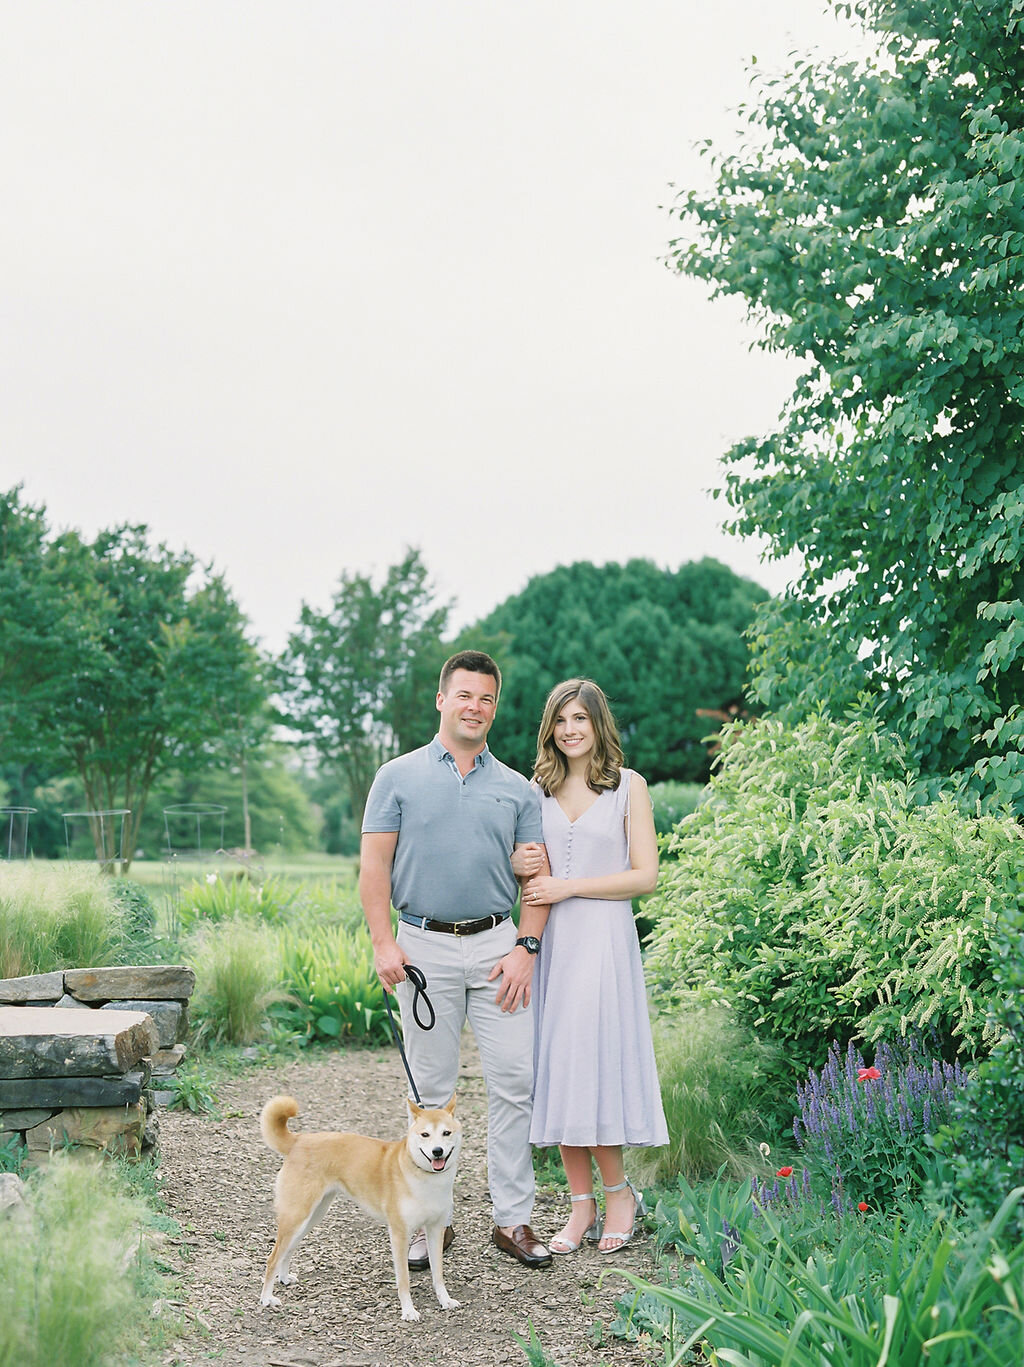 Cylburn Arboretum and Tribeca Engagement Photography Session by Vicki Grafton on East Made Co Baltimore Wedding Planner Blog-31.jpg